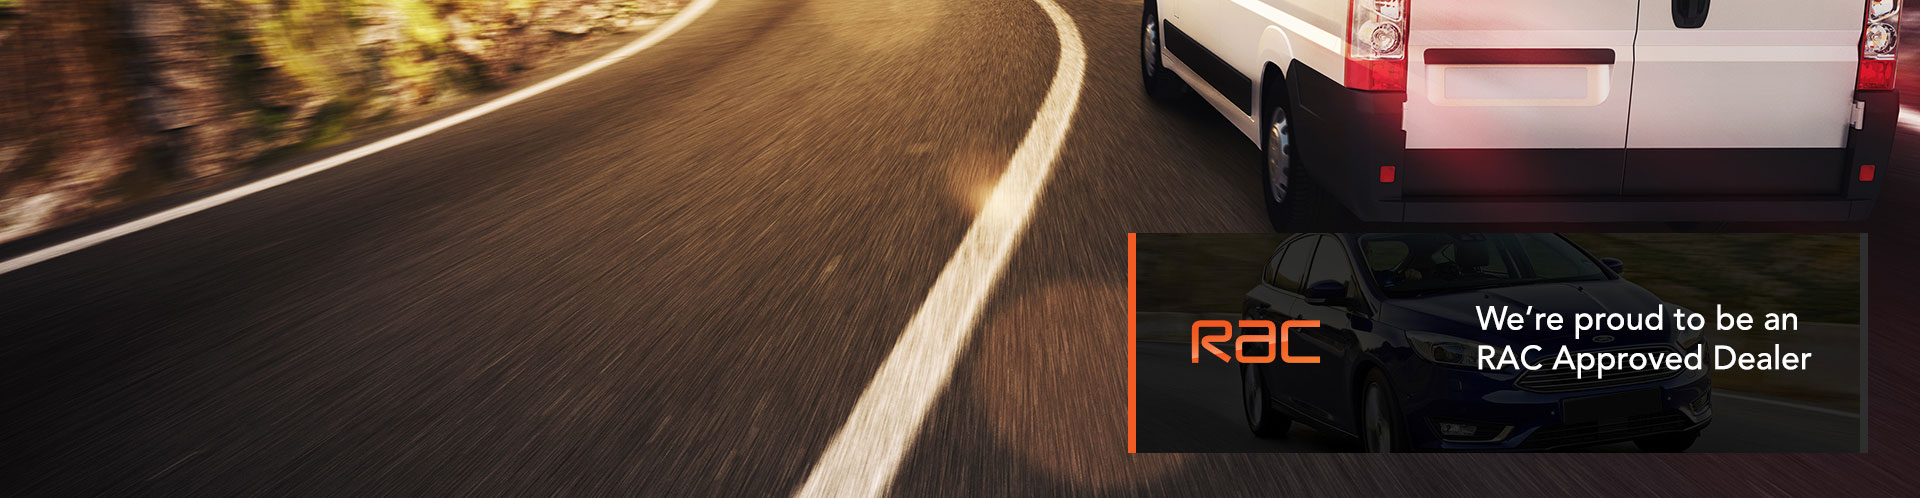 We offer a full RAC Approved Warranty on all our vehicles